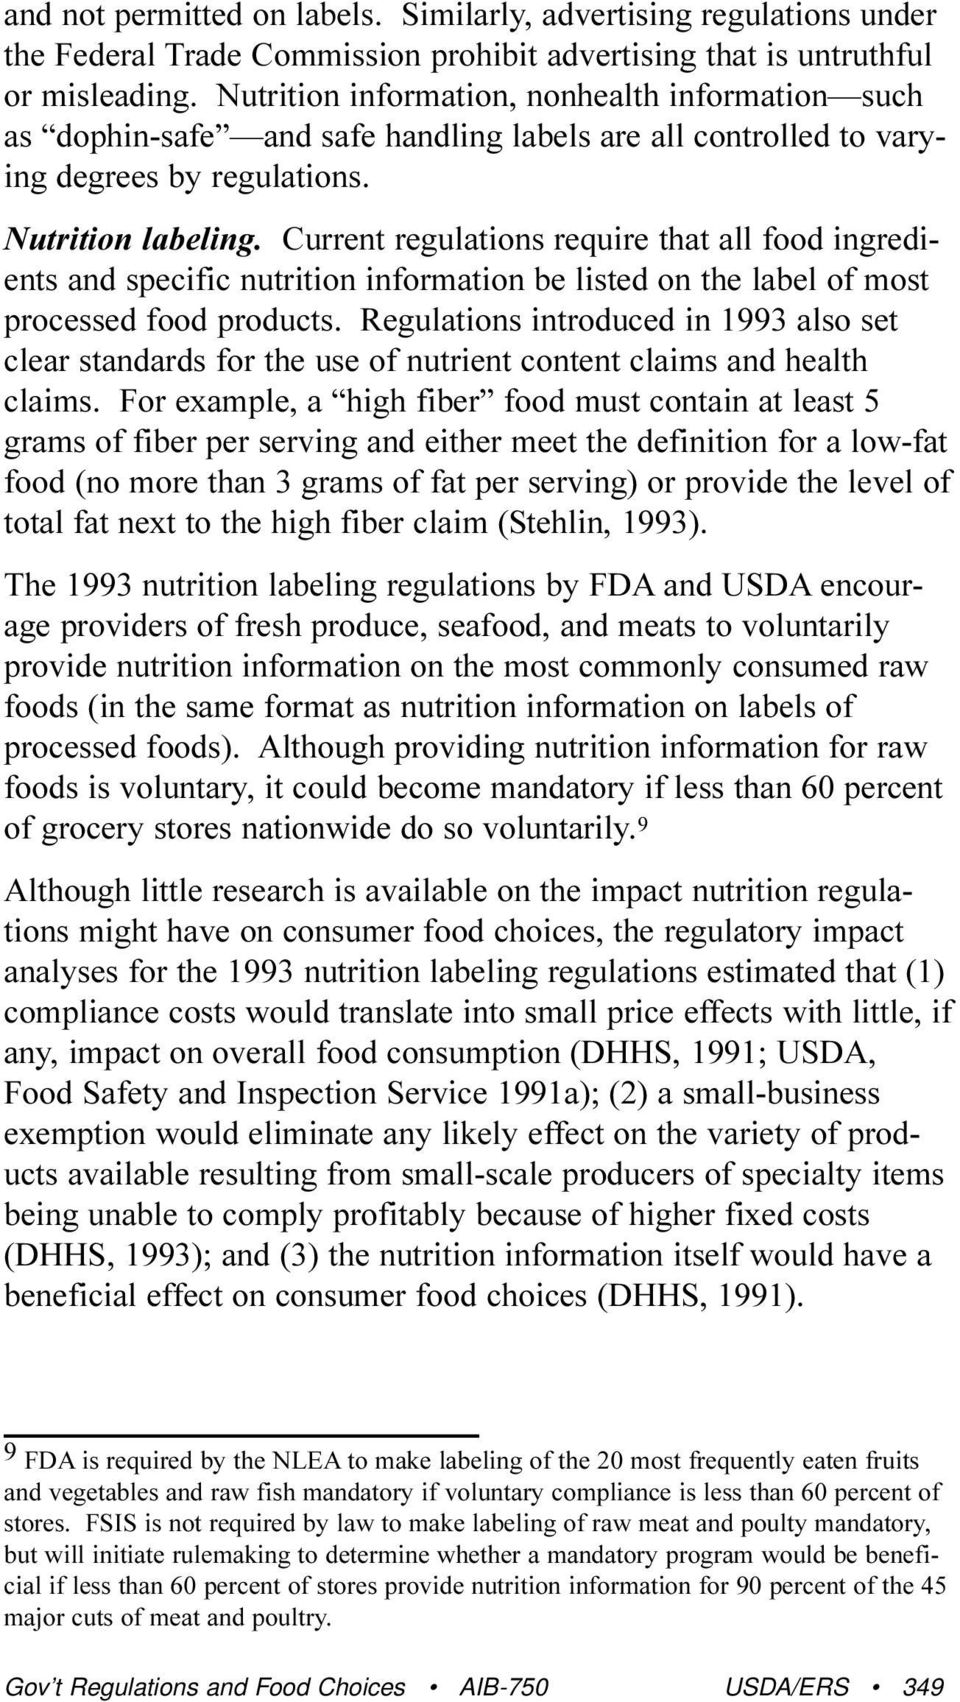 Current regulations require that all food ingredients and specific nutrition information be listed on the label of most processed food products.